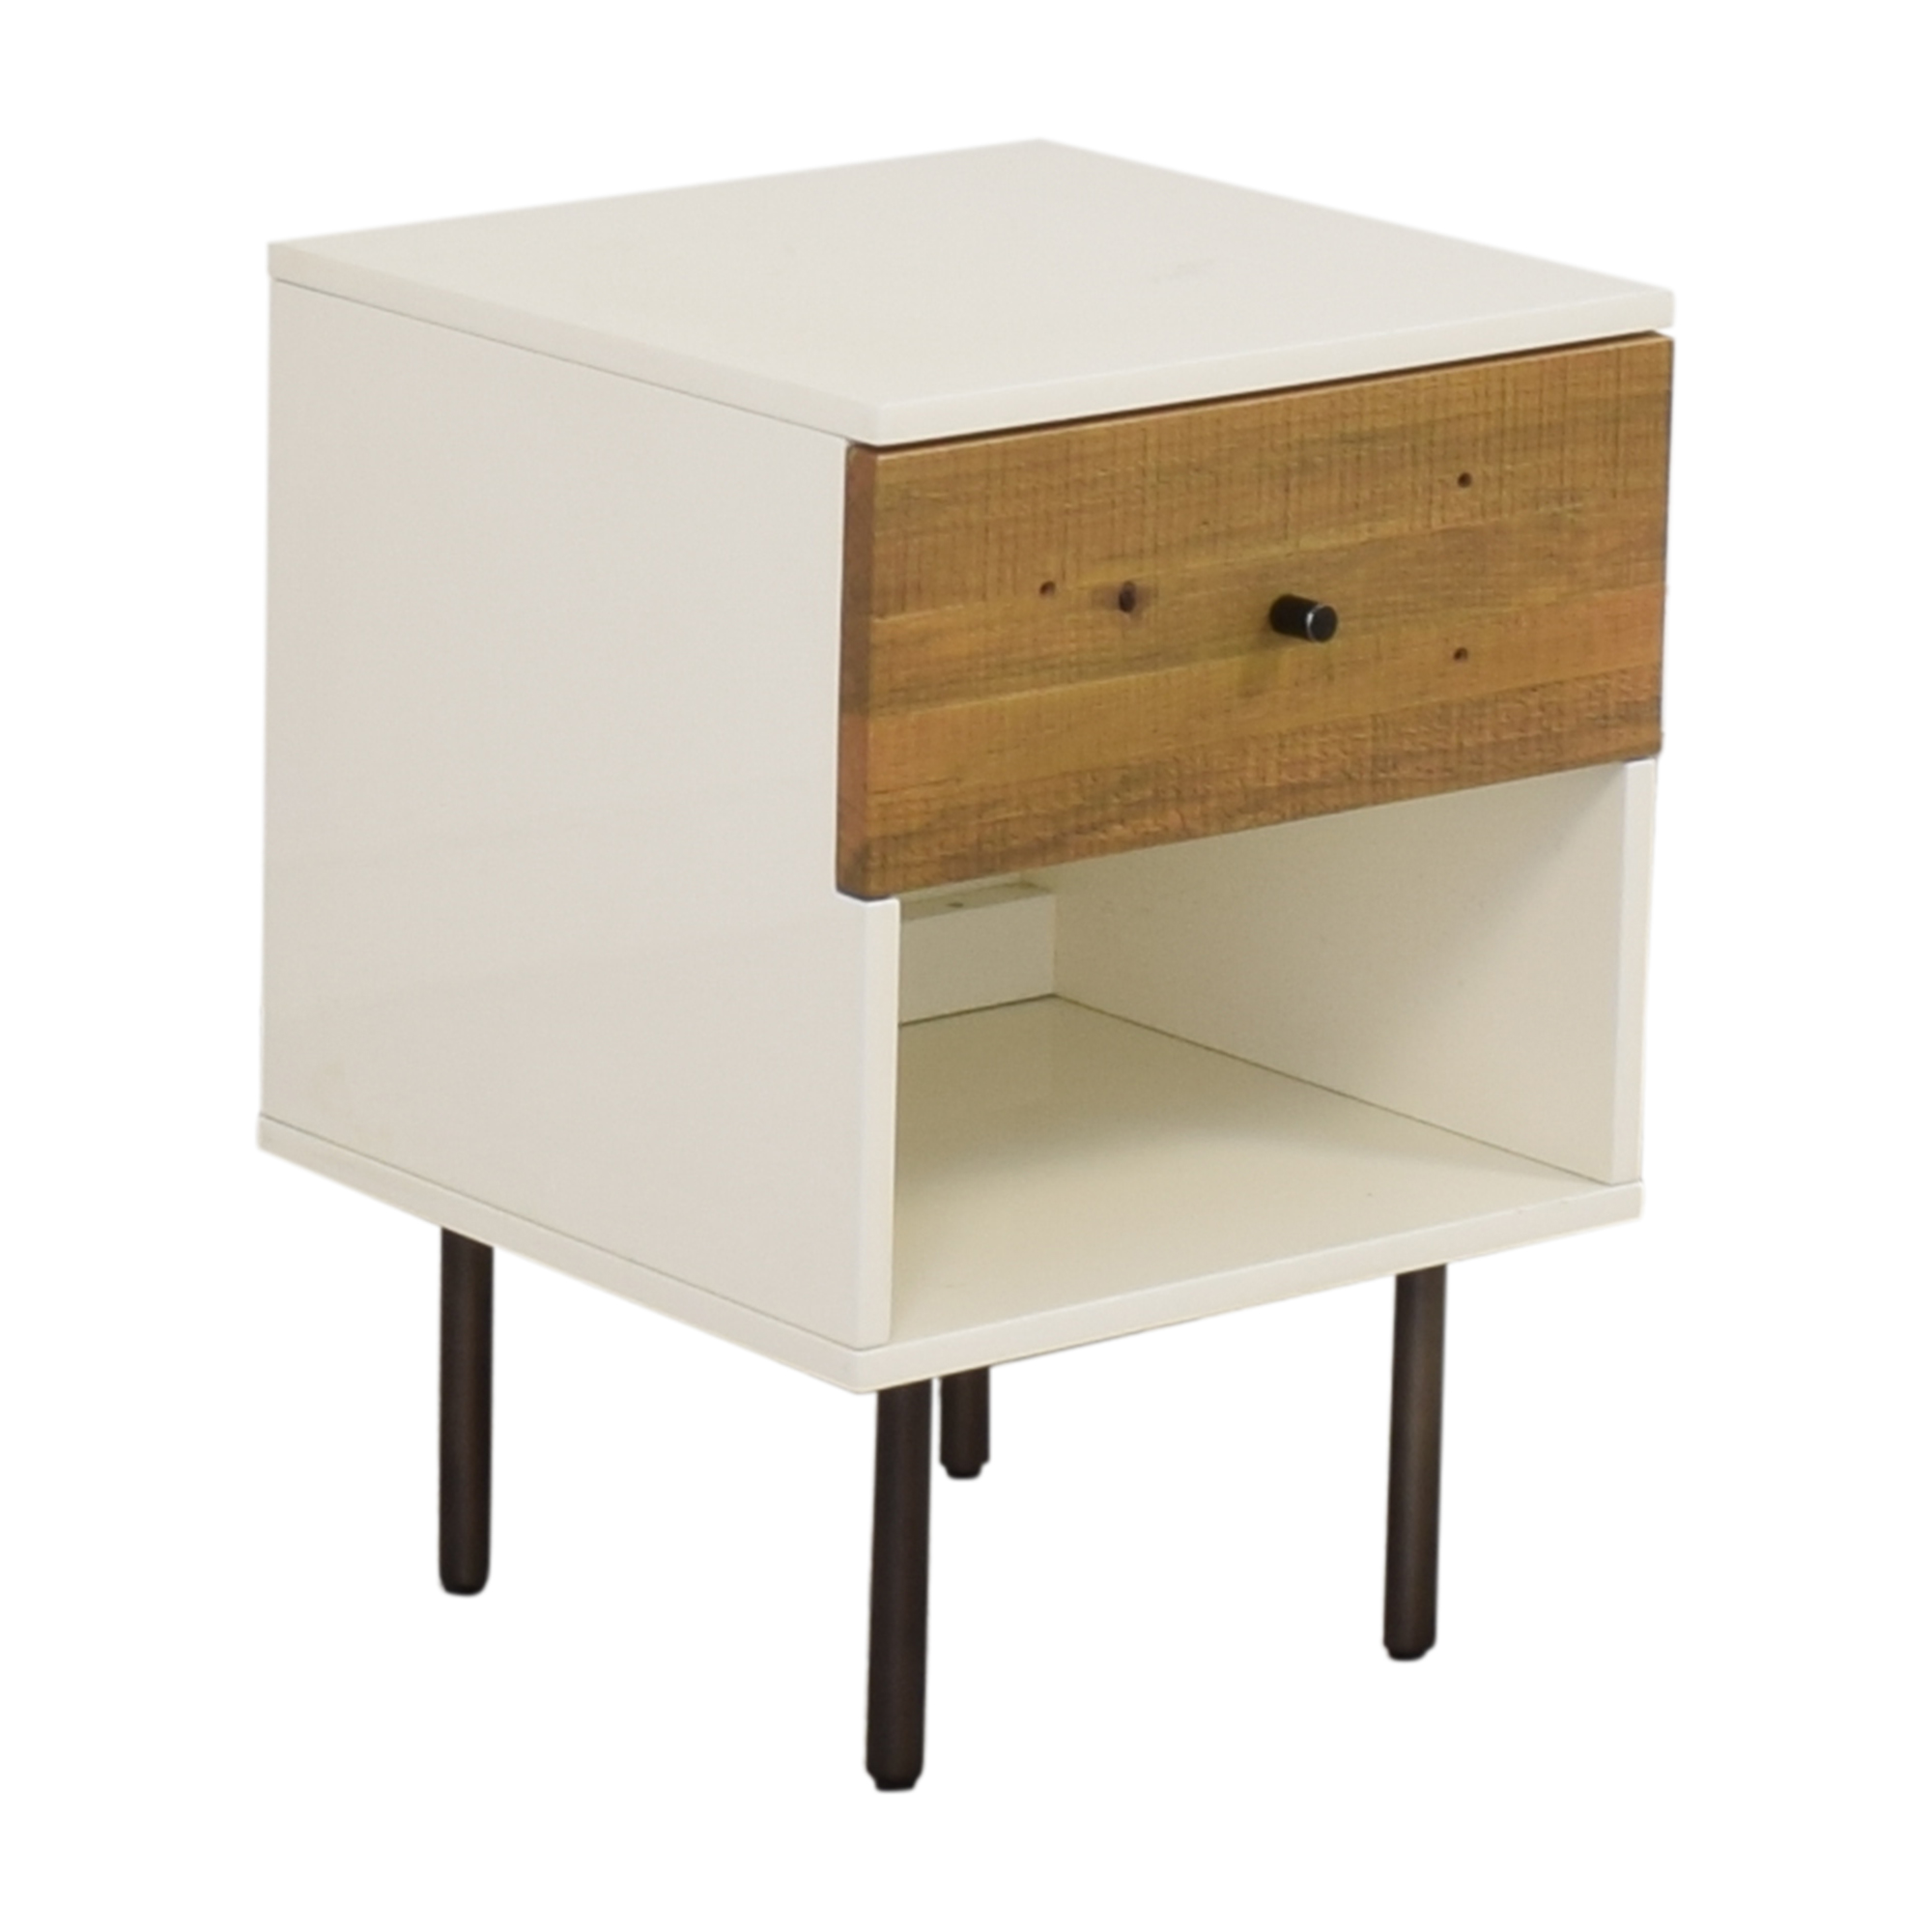 West Elm West Elm Reclaimed Wood & Lacquer Nightstand pa